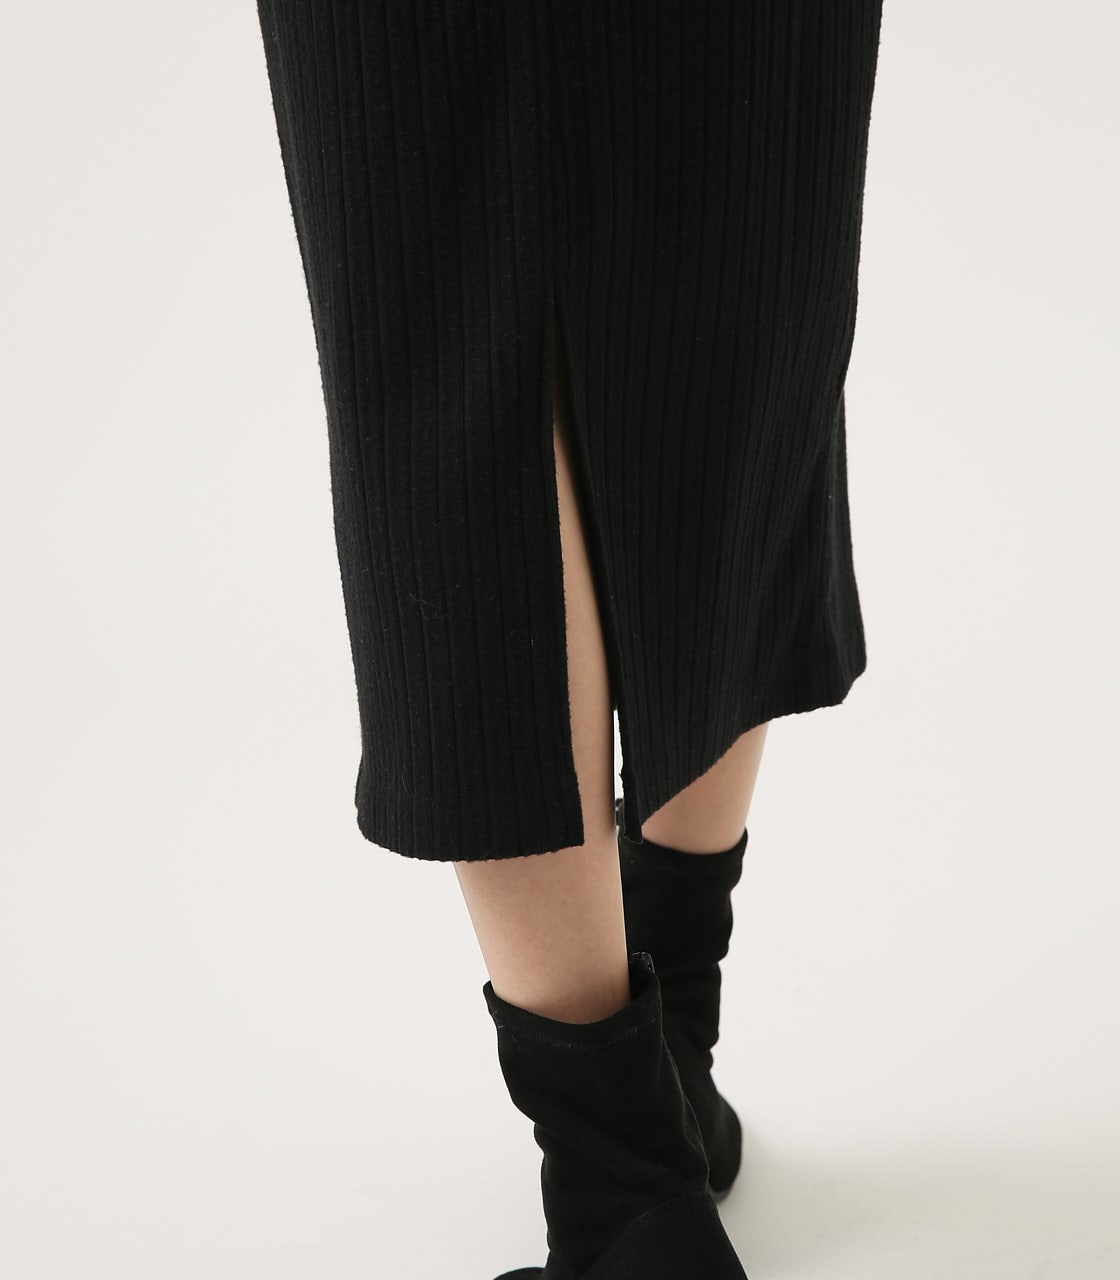 【AZUL BY MOUSSY】BLUSHED TIGHT MIDI SKIRT 詳細画像 BLK 9